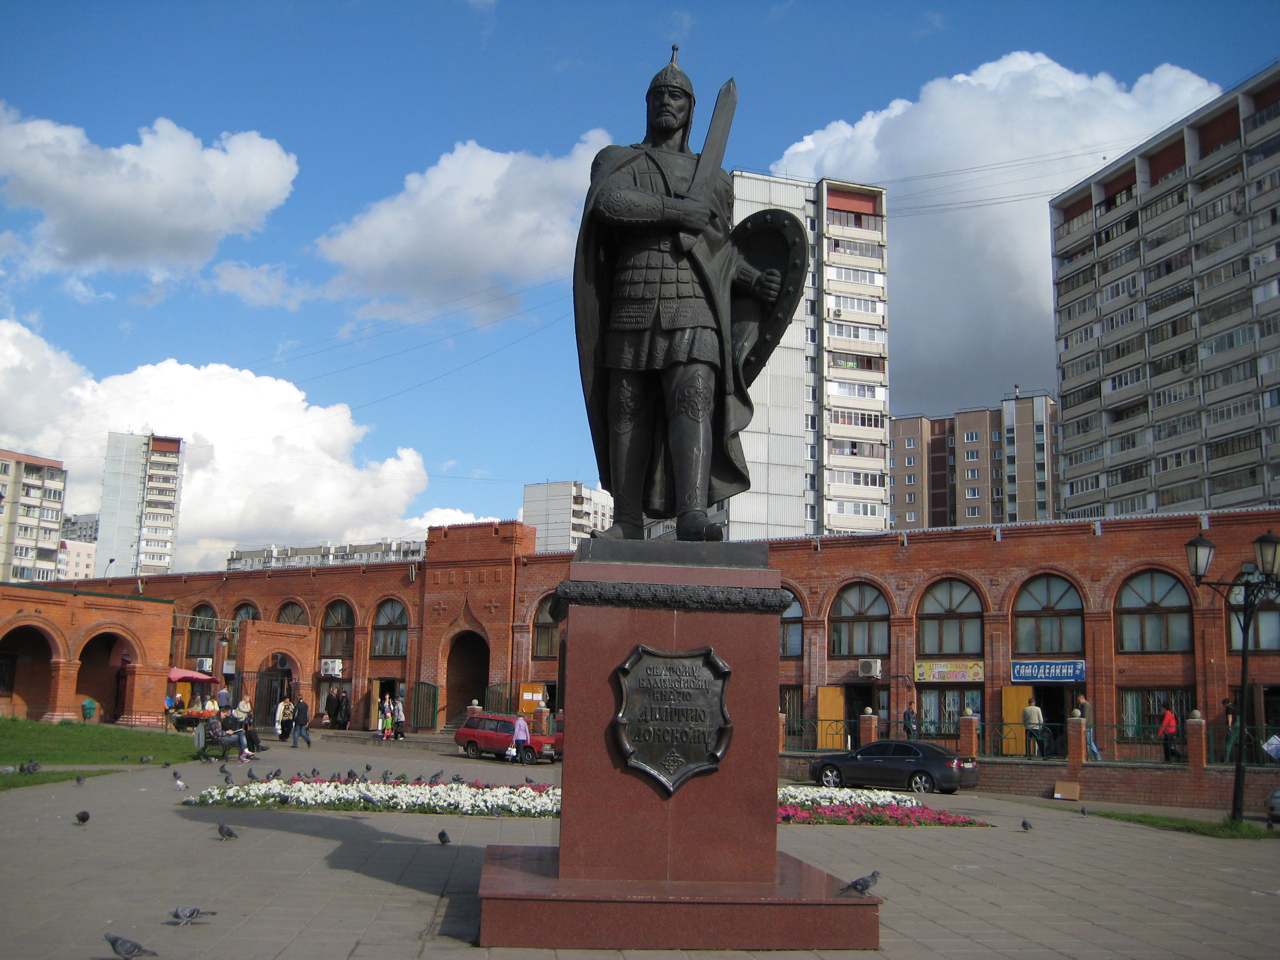 landmark-of-the-week-statue-of-dmitry-donskoy-dmitry-donskoy-square-dzerzhinsky